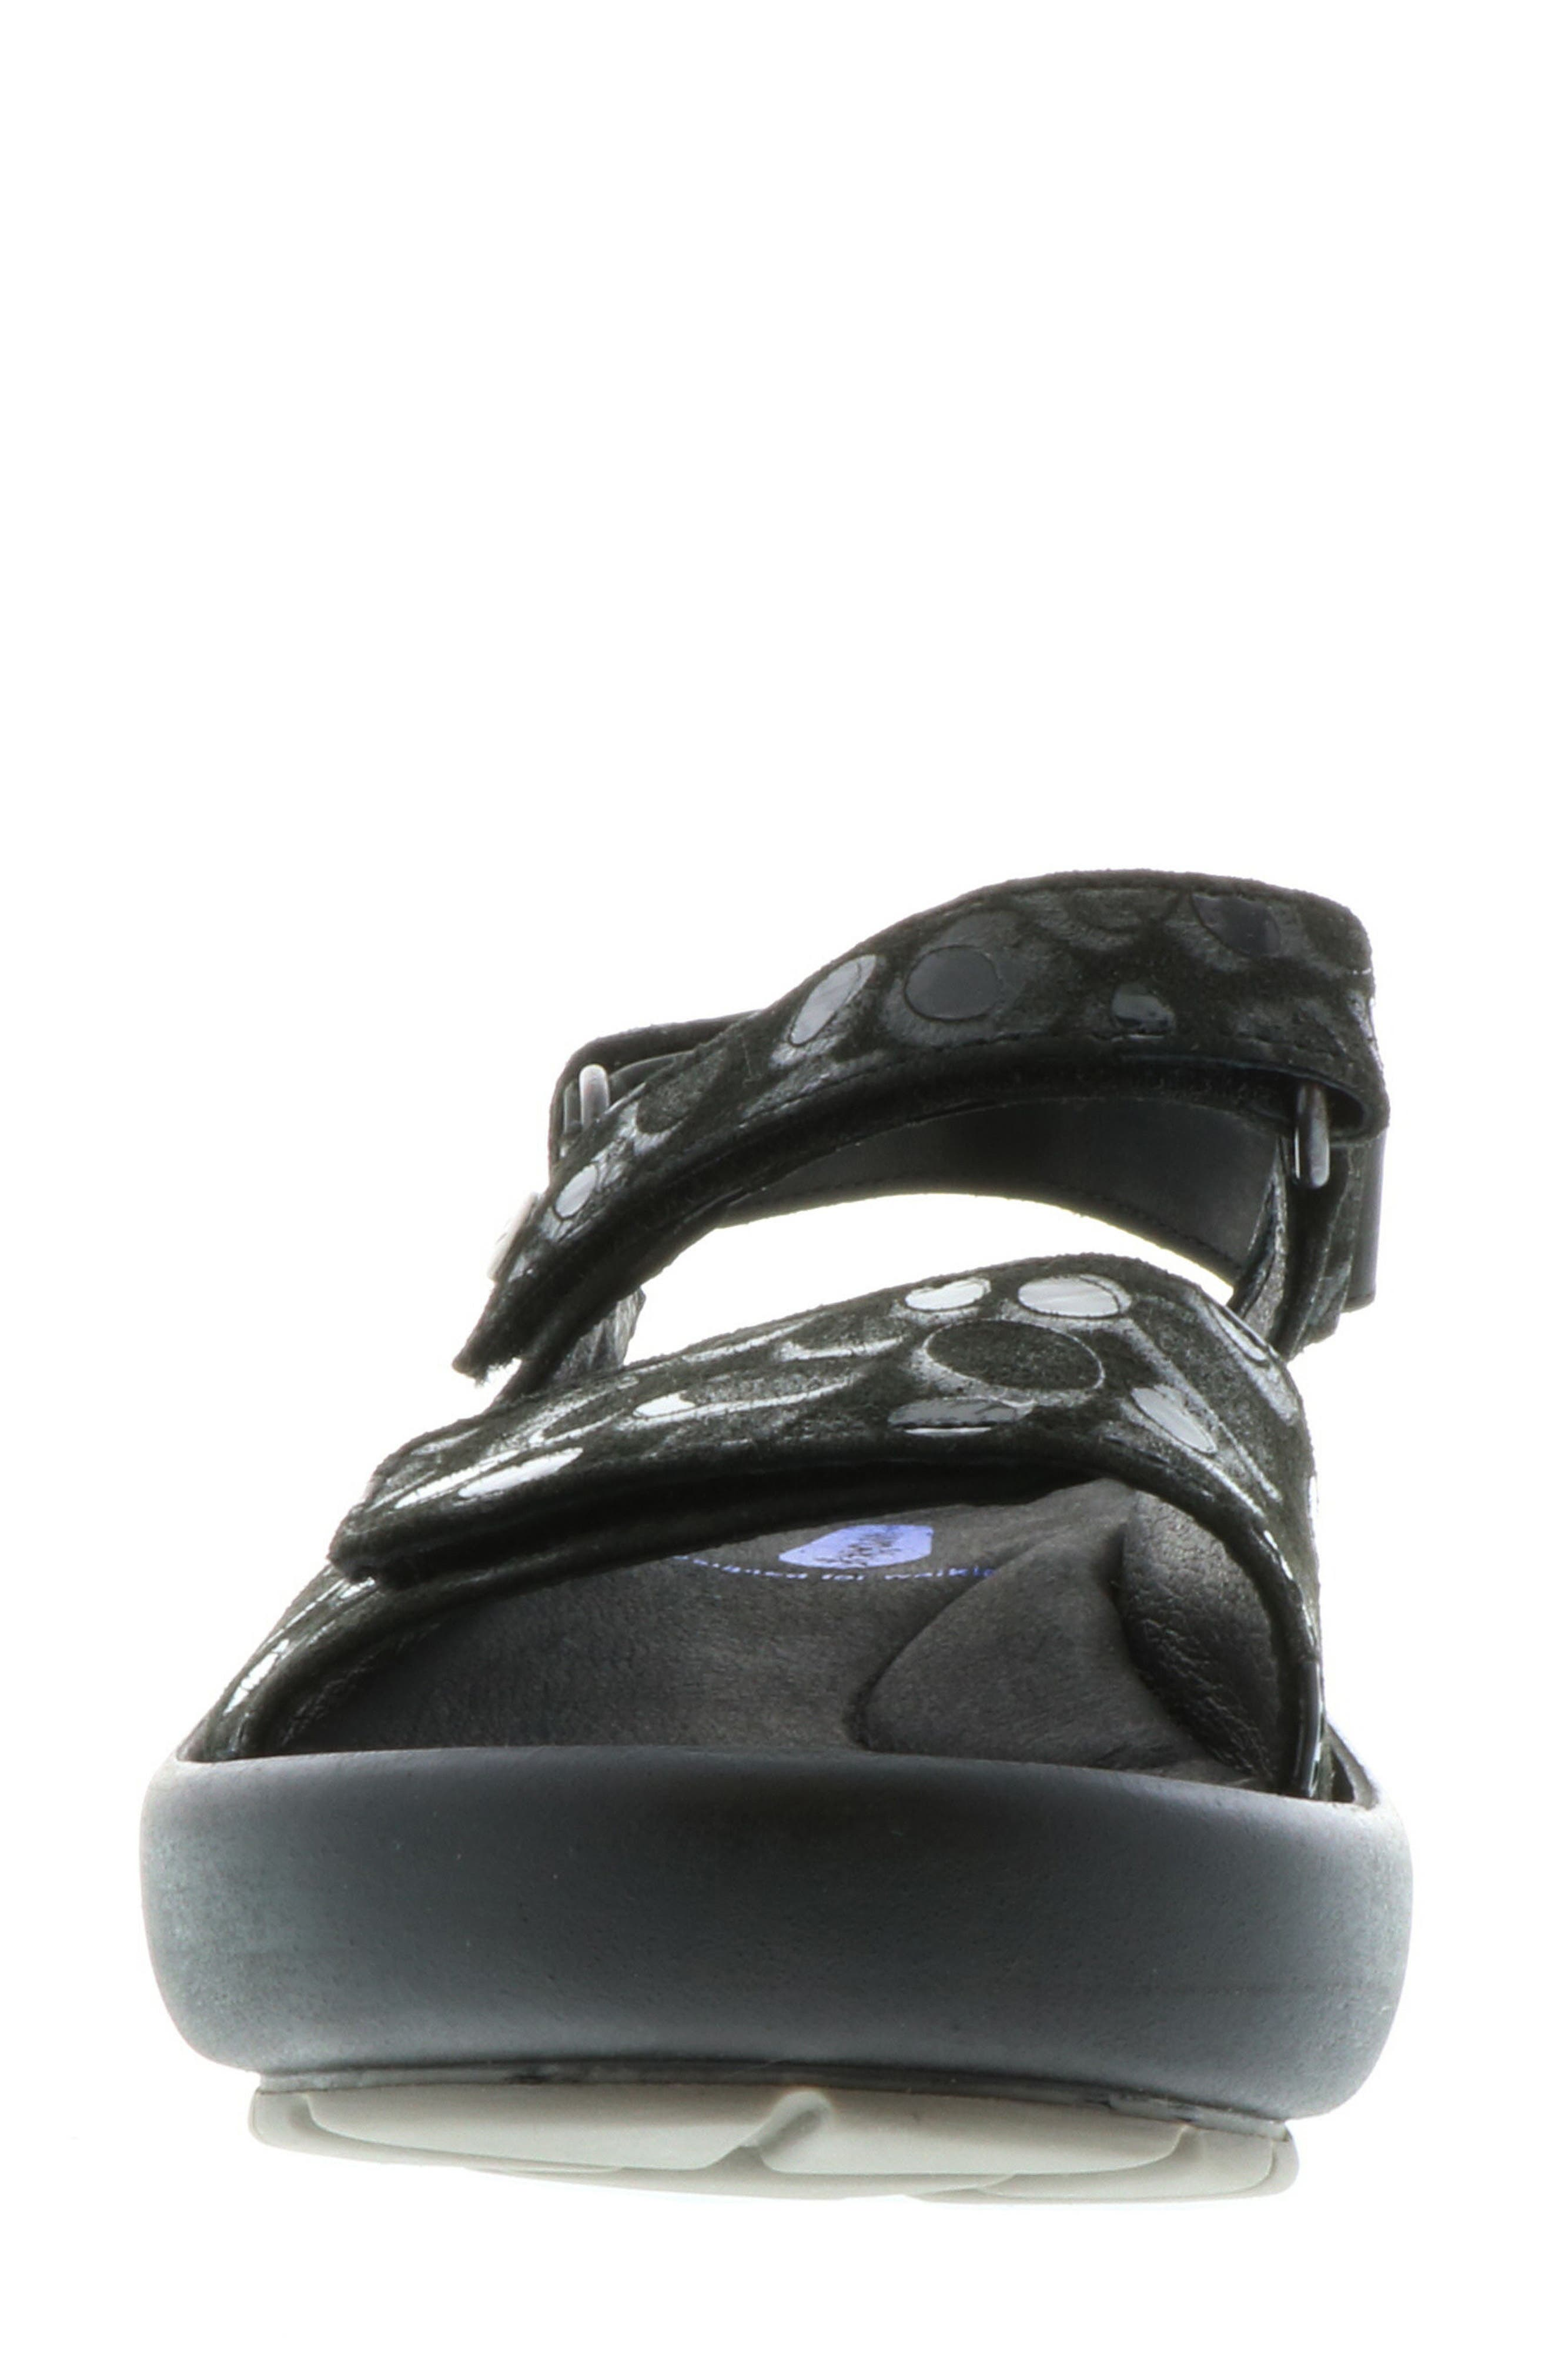 Rio Sandal,                             Alternate thumbnail 4, color,                             BLACK CIRCLE PRINT